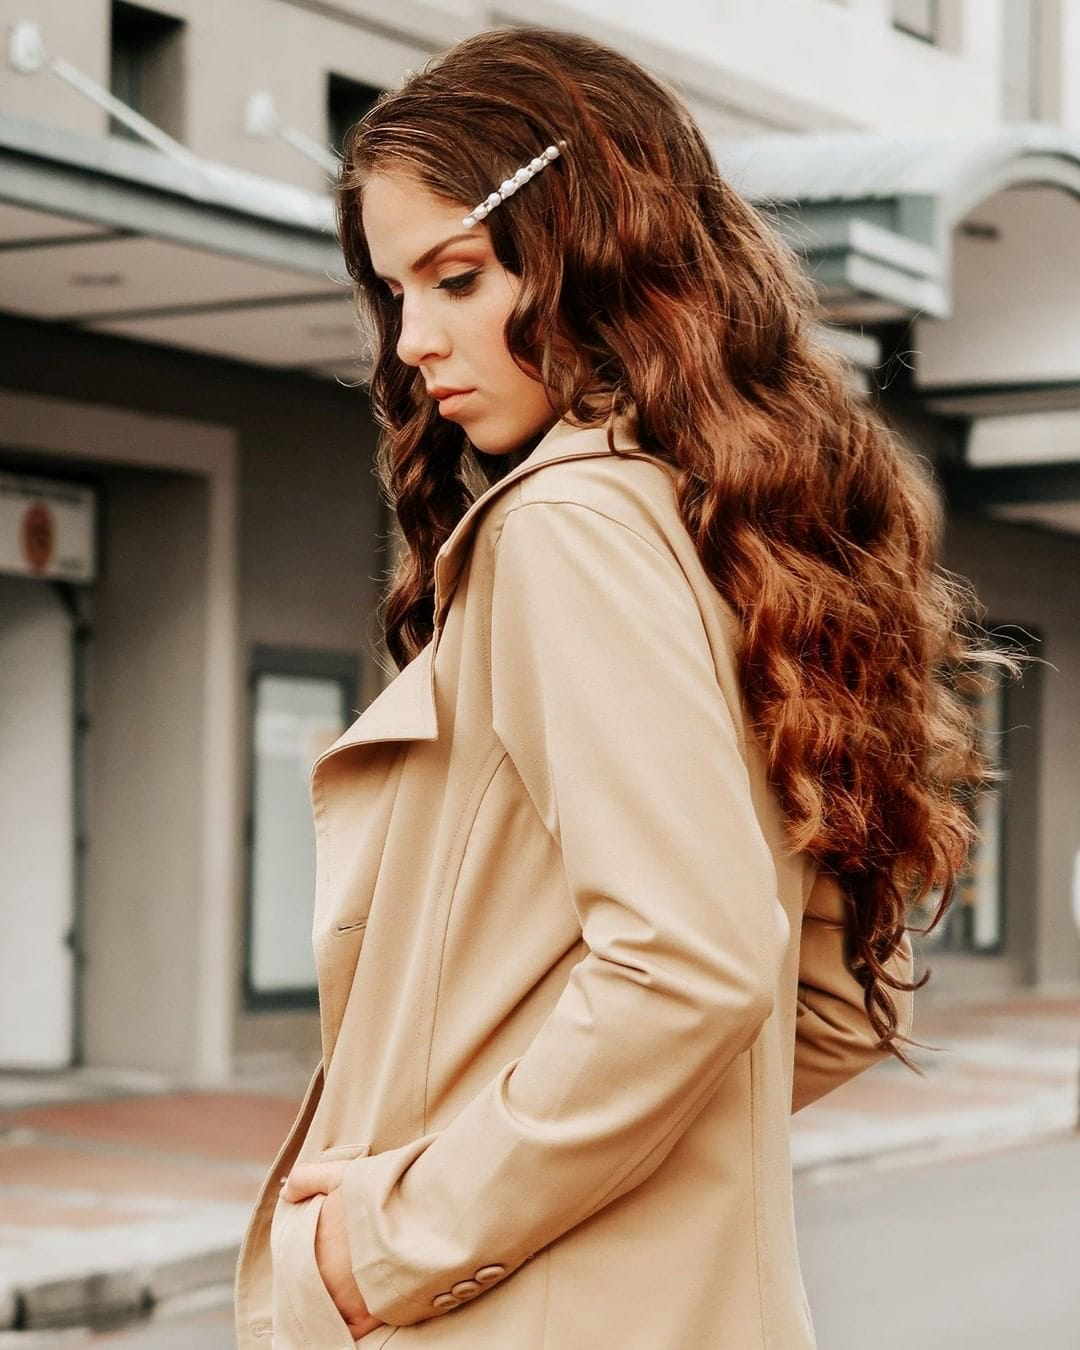 Woman with long curly chestnut brown hair